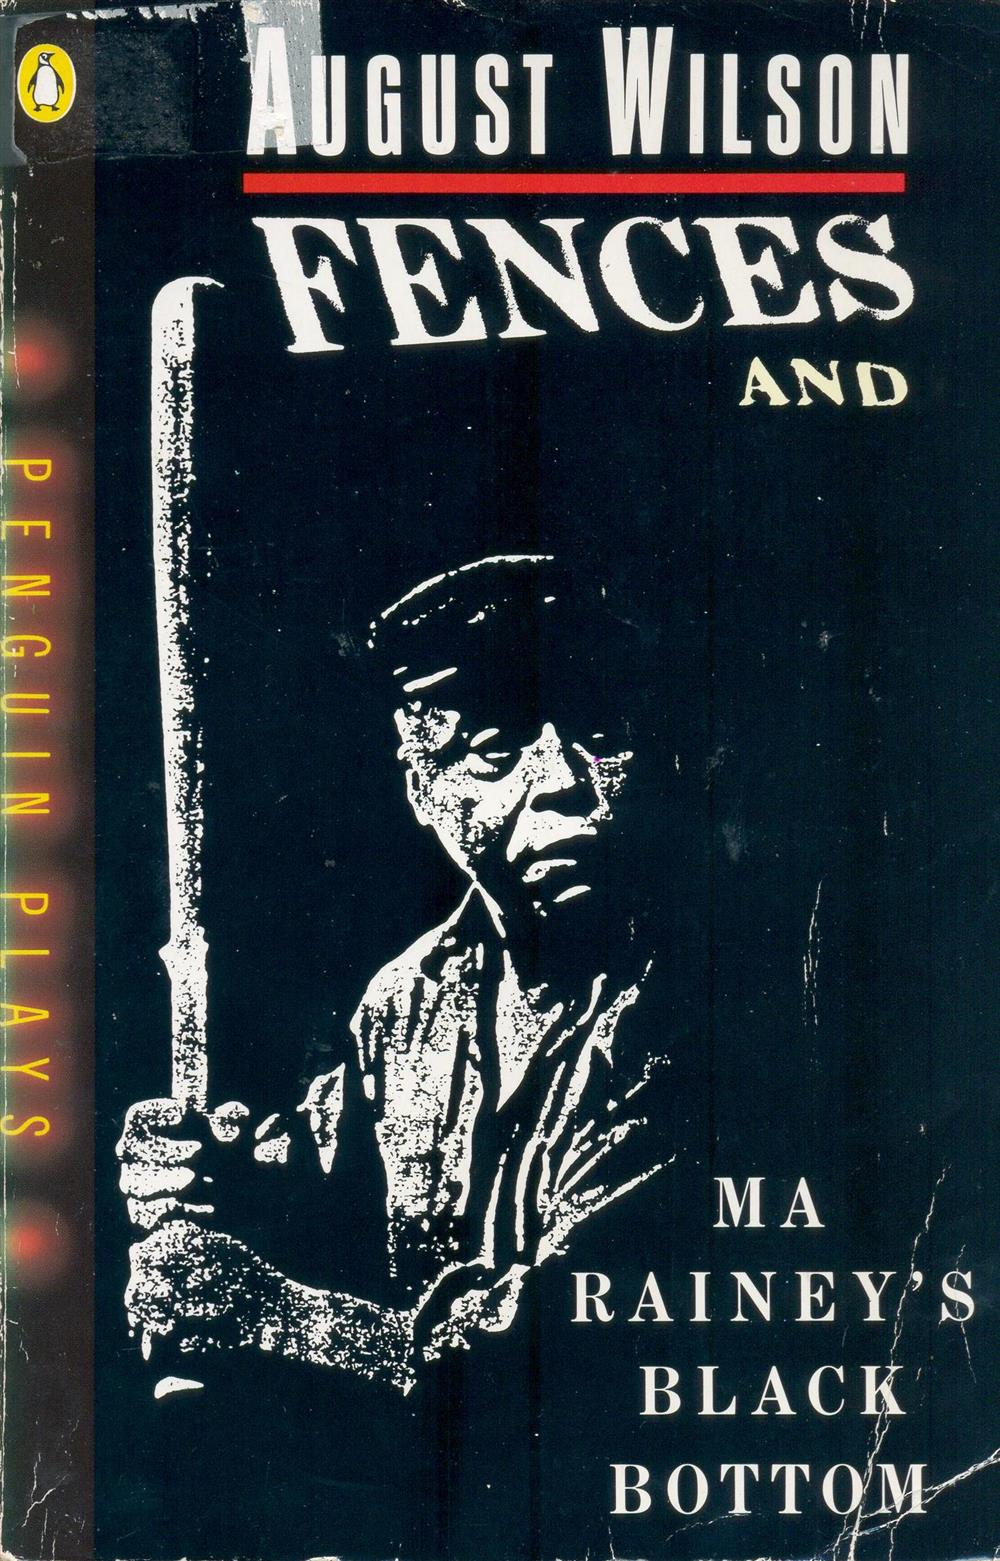 Fences and 001.jpg